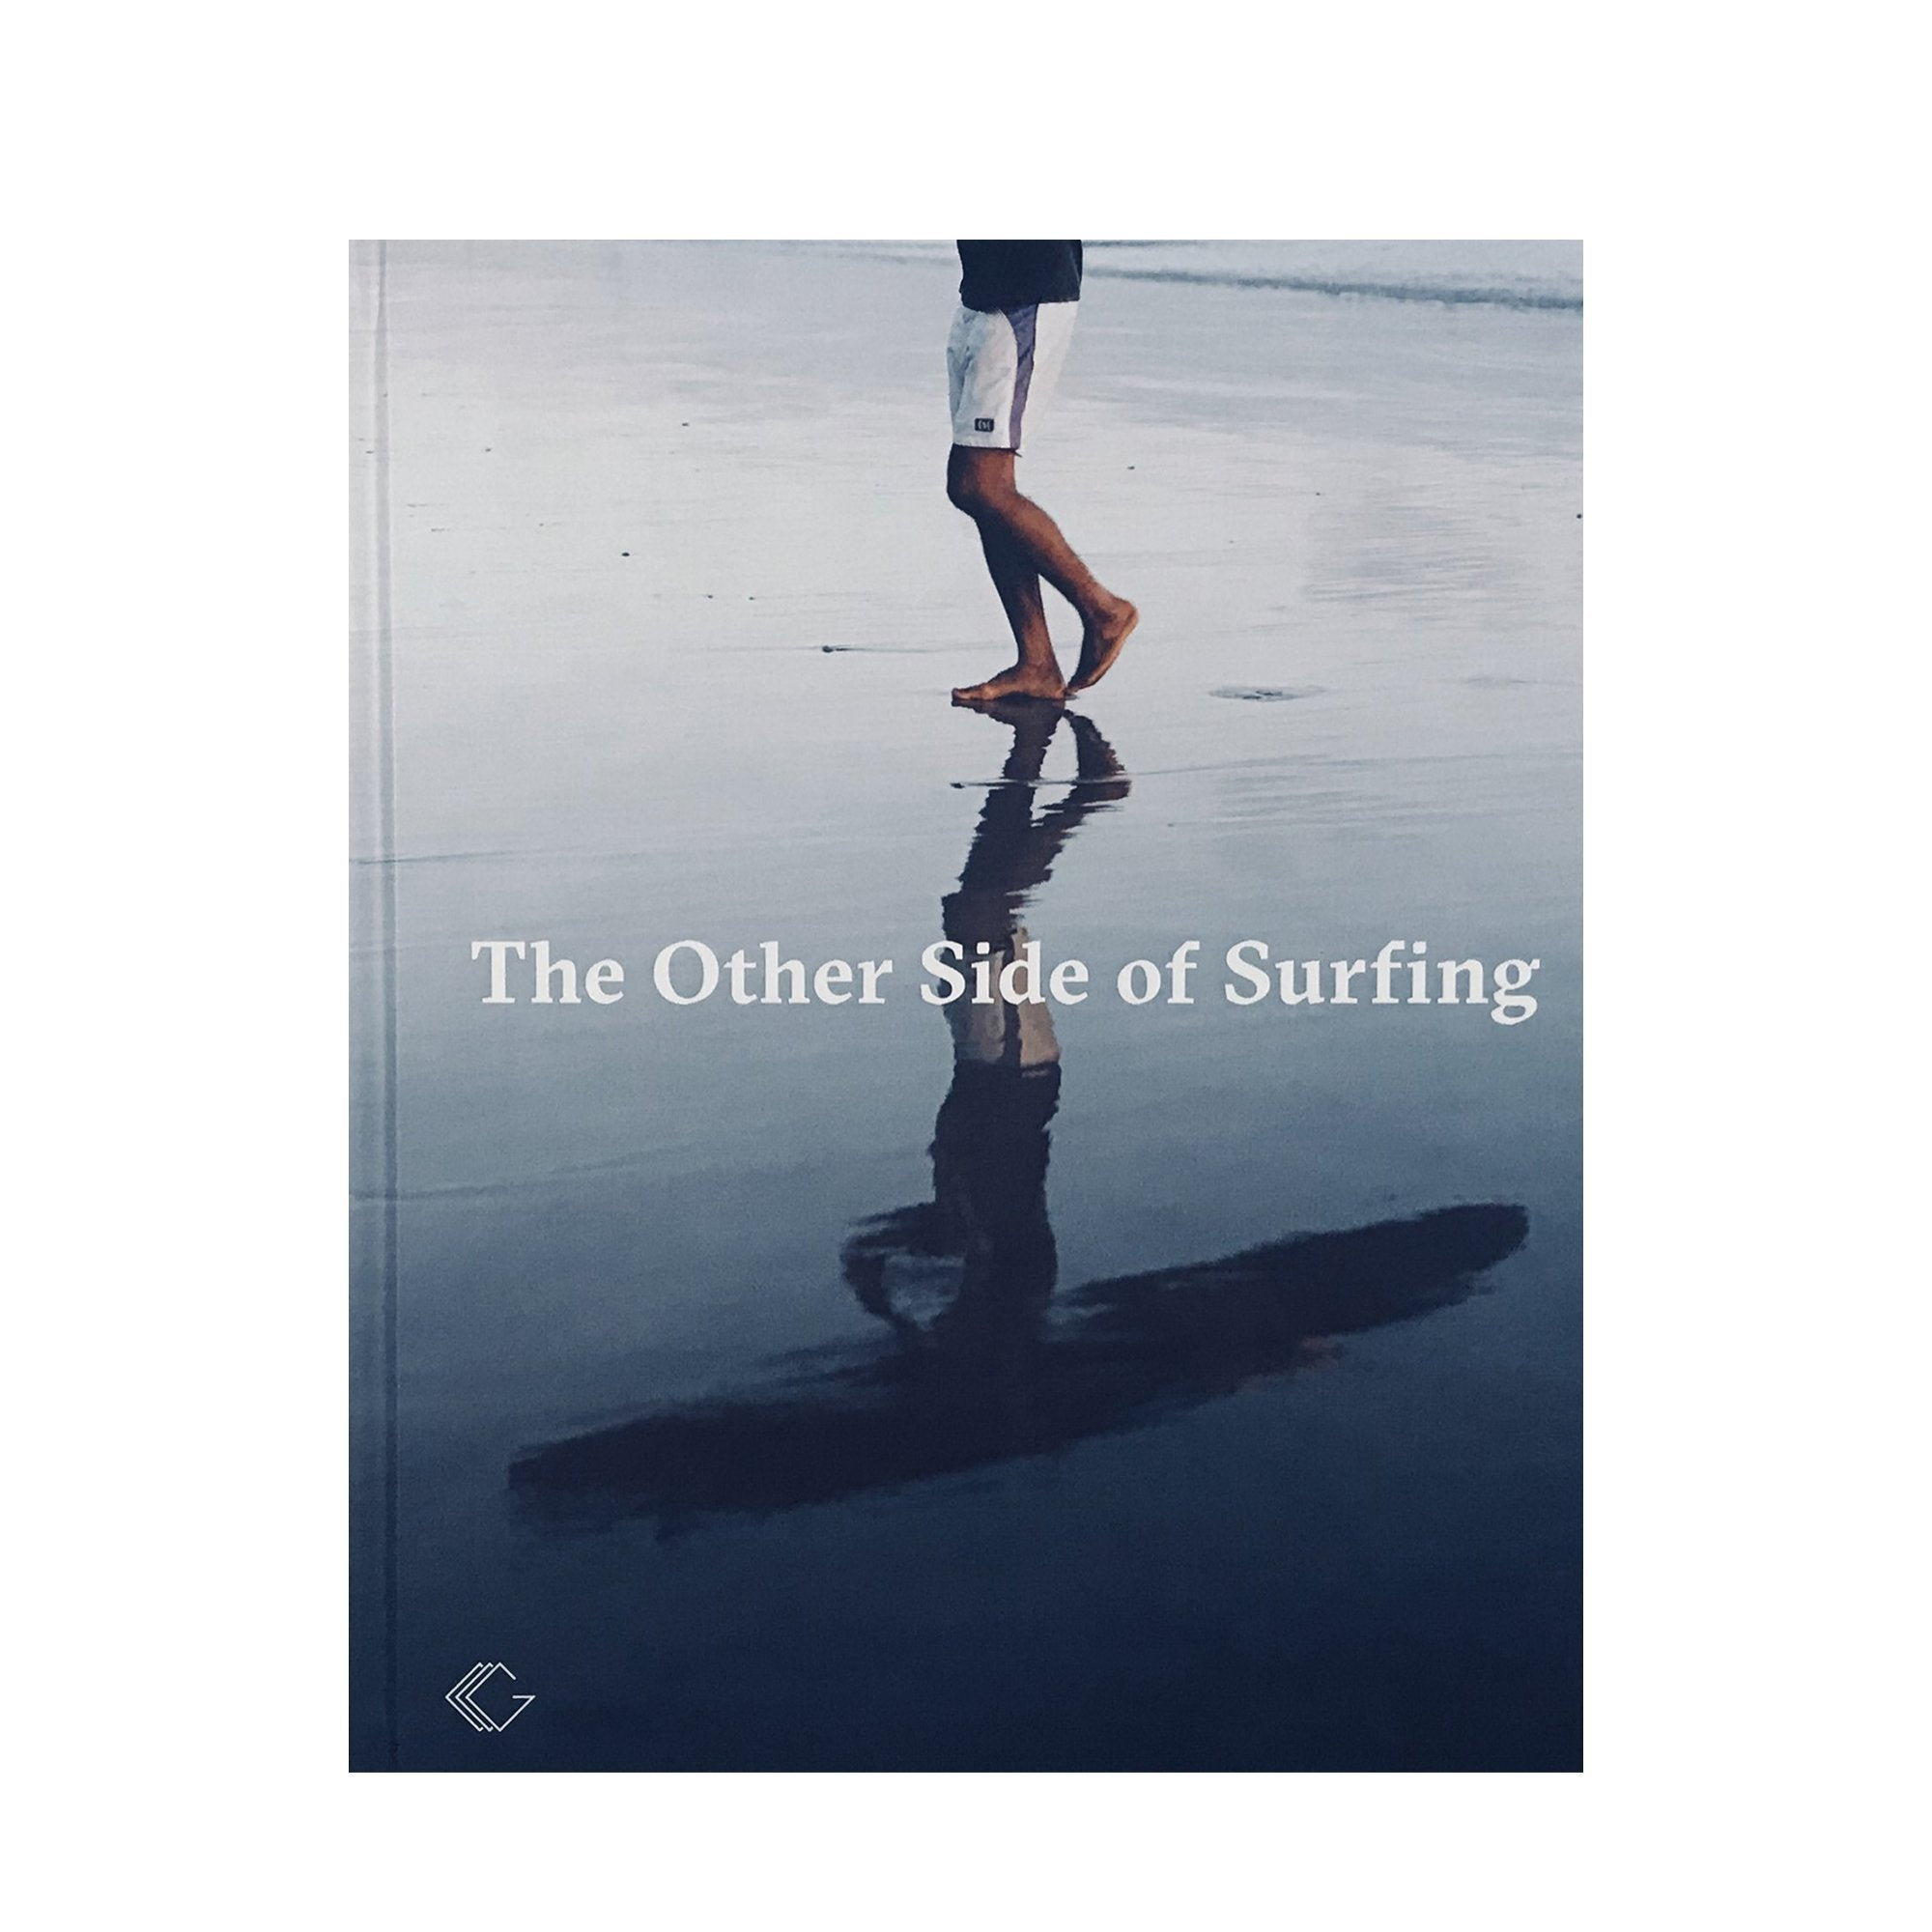 THE OTHER SIDE OF SURFING the other side of surfing - LANGBRETT online shop